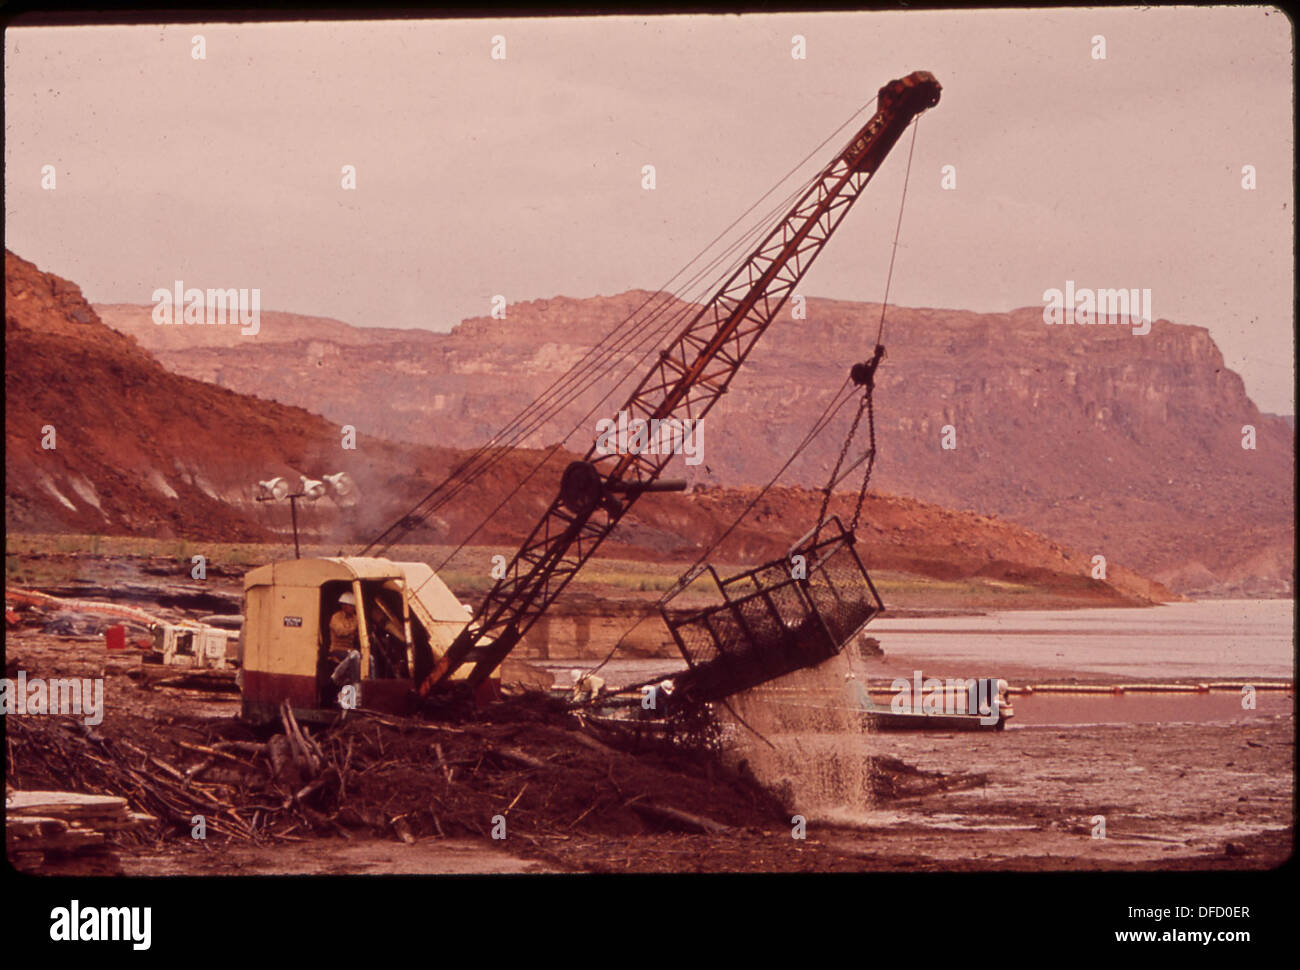 DRAGLINE SHOVEL SCOOPS UP OIL-LADEN DEBRIS FROM LOG BOOM ON SAN JUAN RIVER NEAR LAKE POWELL. OIL FLOWED FROM BURST... Stock Photo